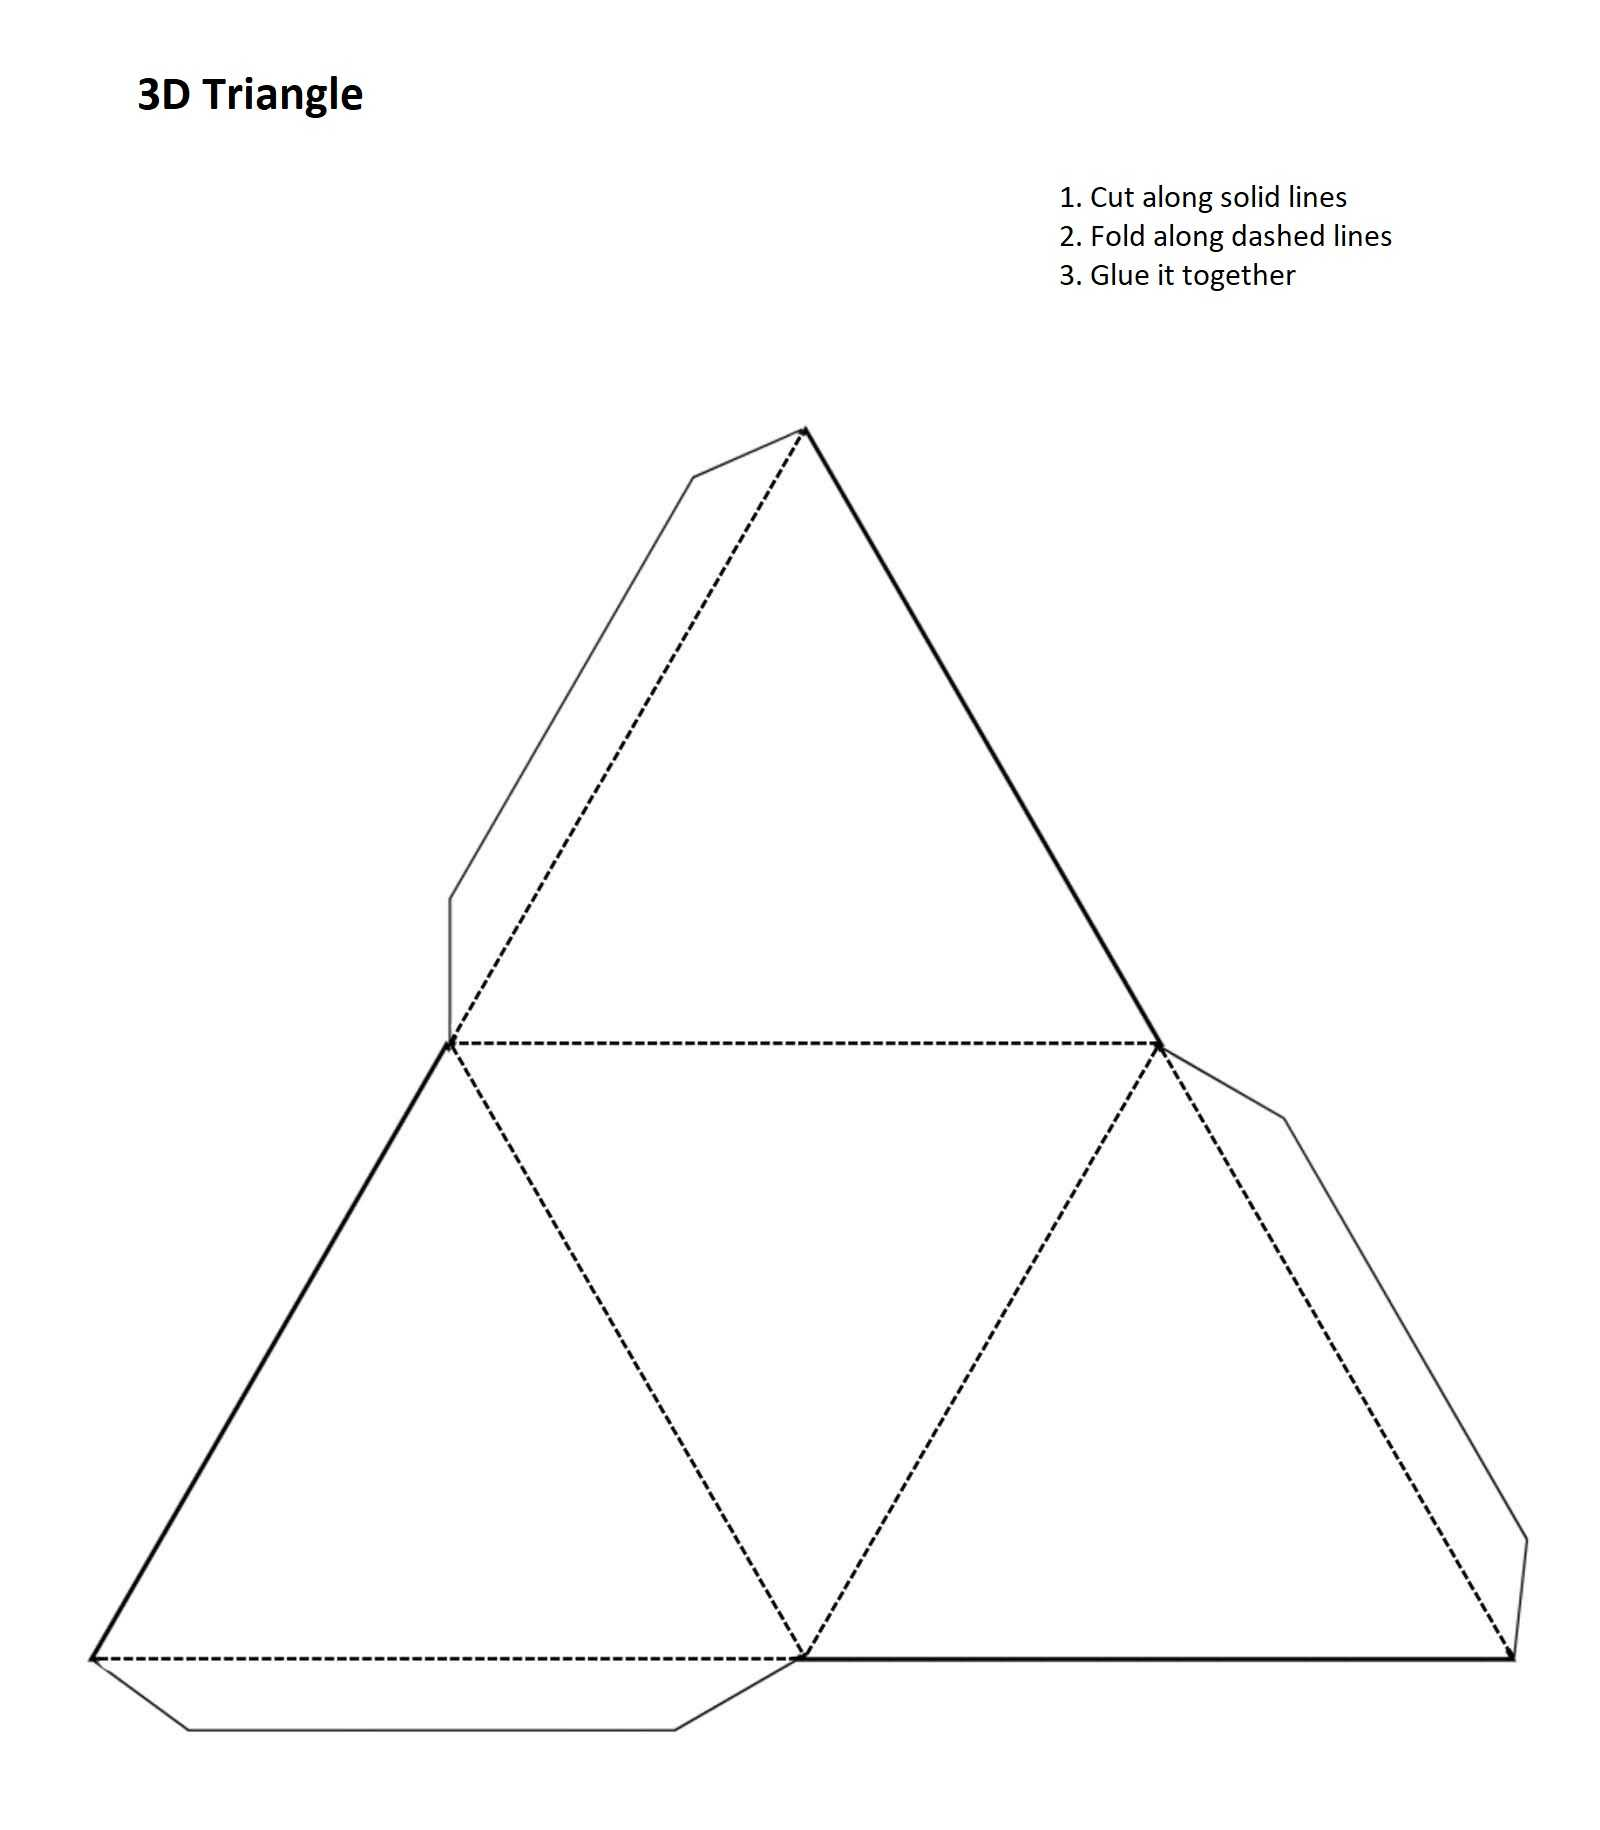 Triangle 3D Template